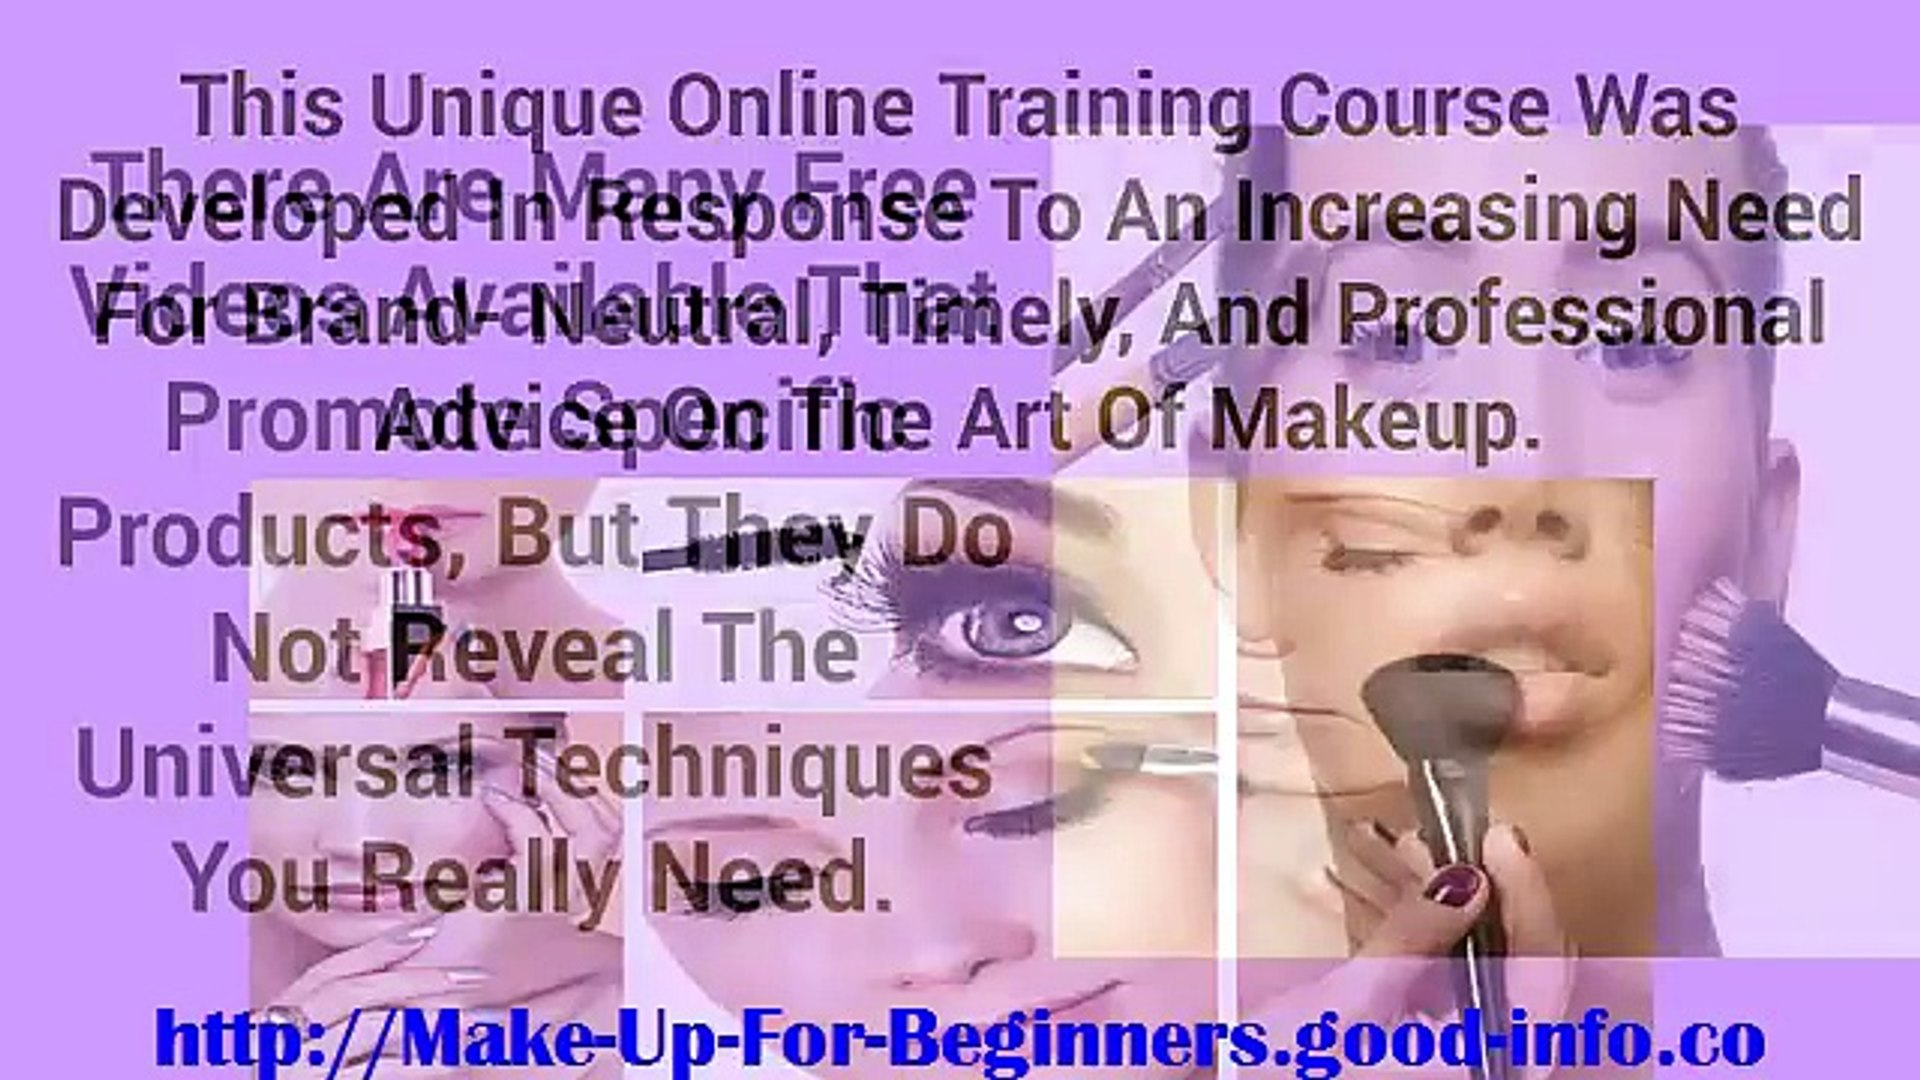 Make Up Tricks, How To Do Makeup For Face, How To Apply Perfect Makeup, Learn To Apply Makeup